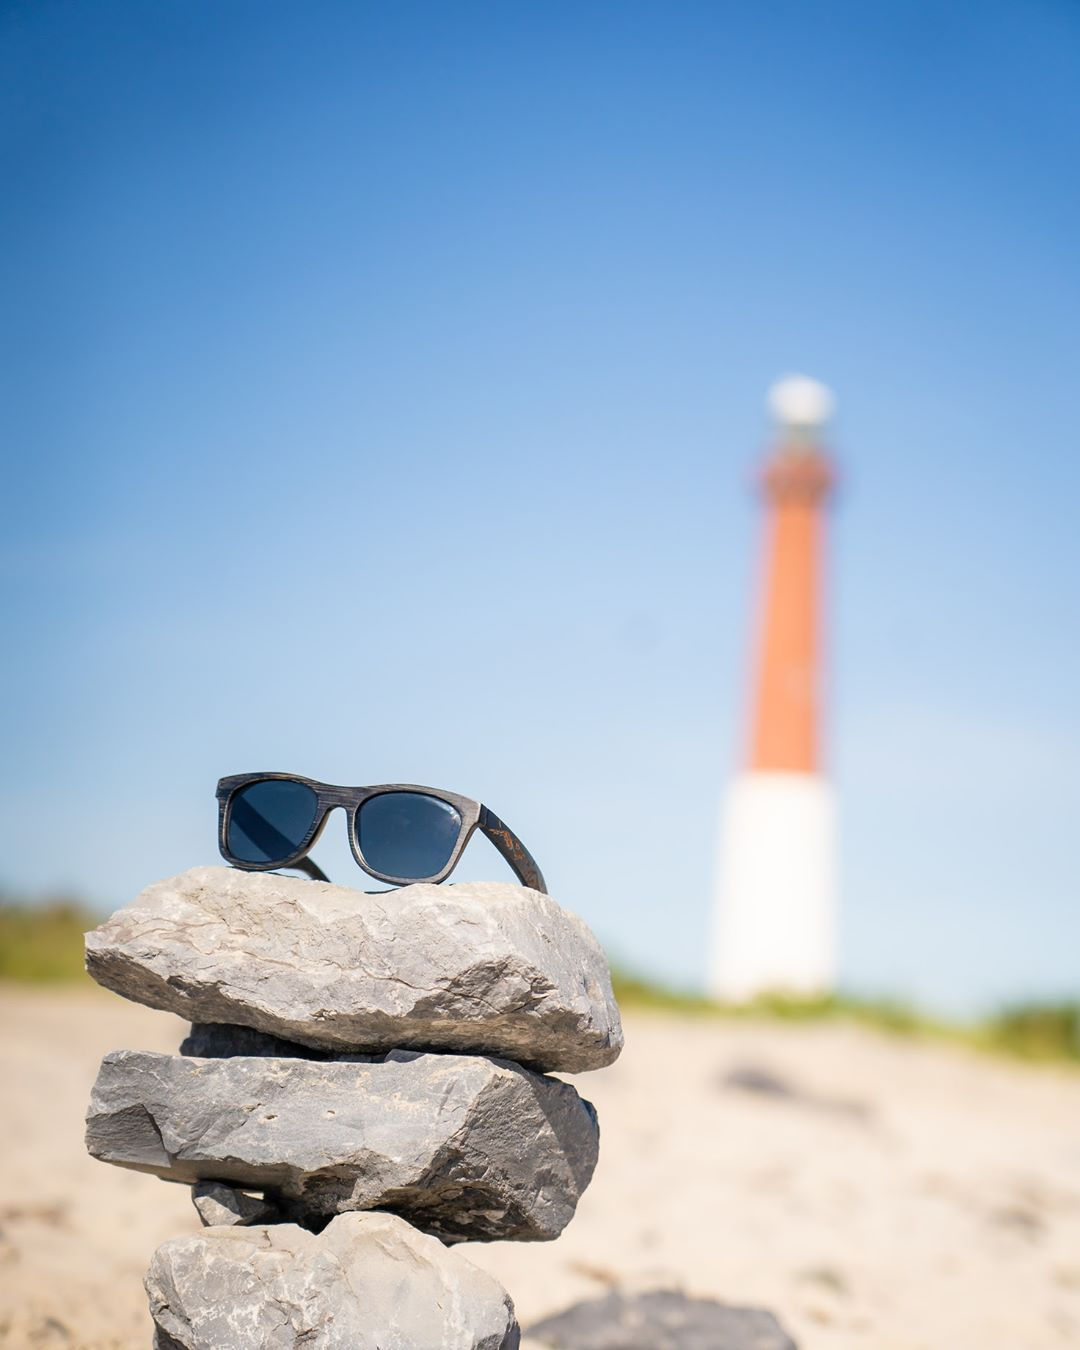 LBI So convenient those rocks were there, made for a good photo …